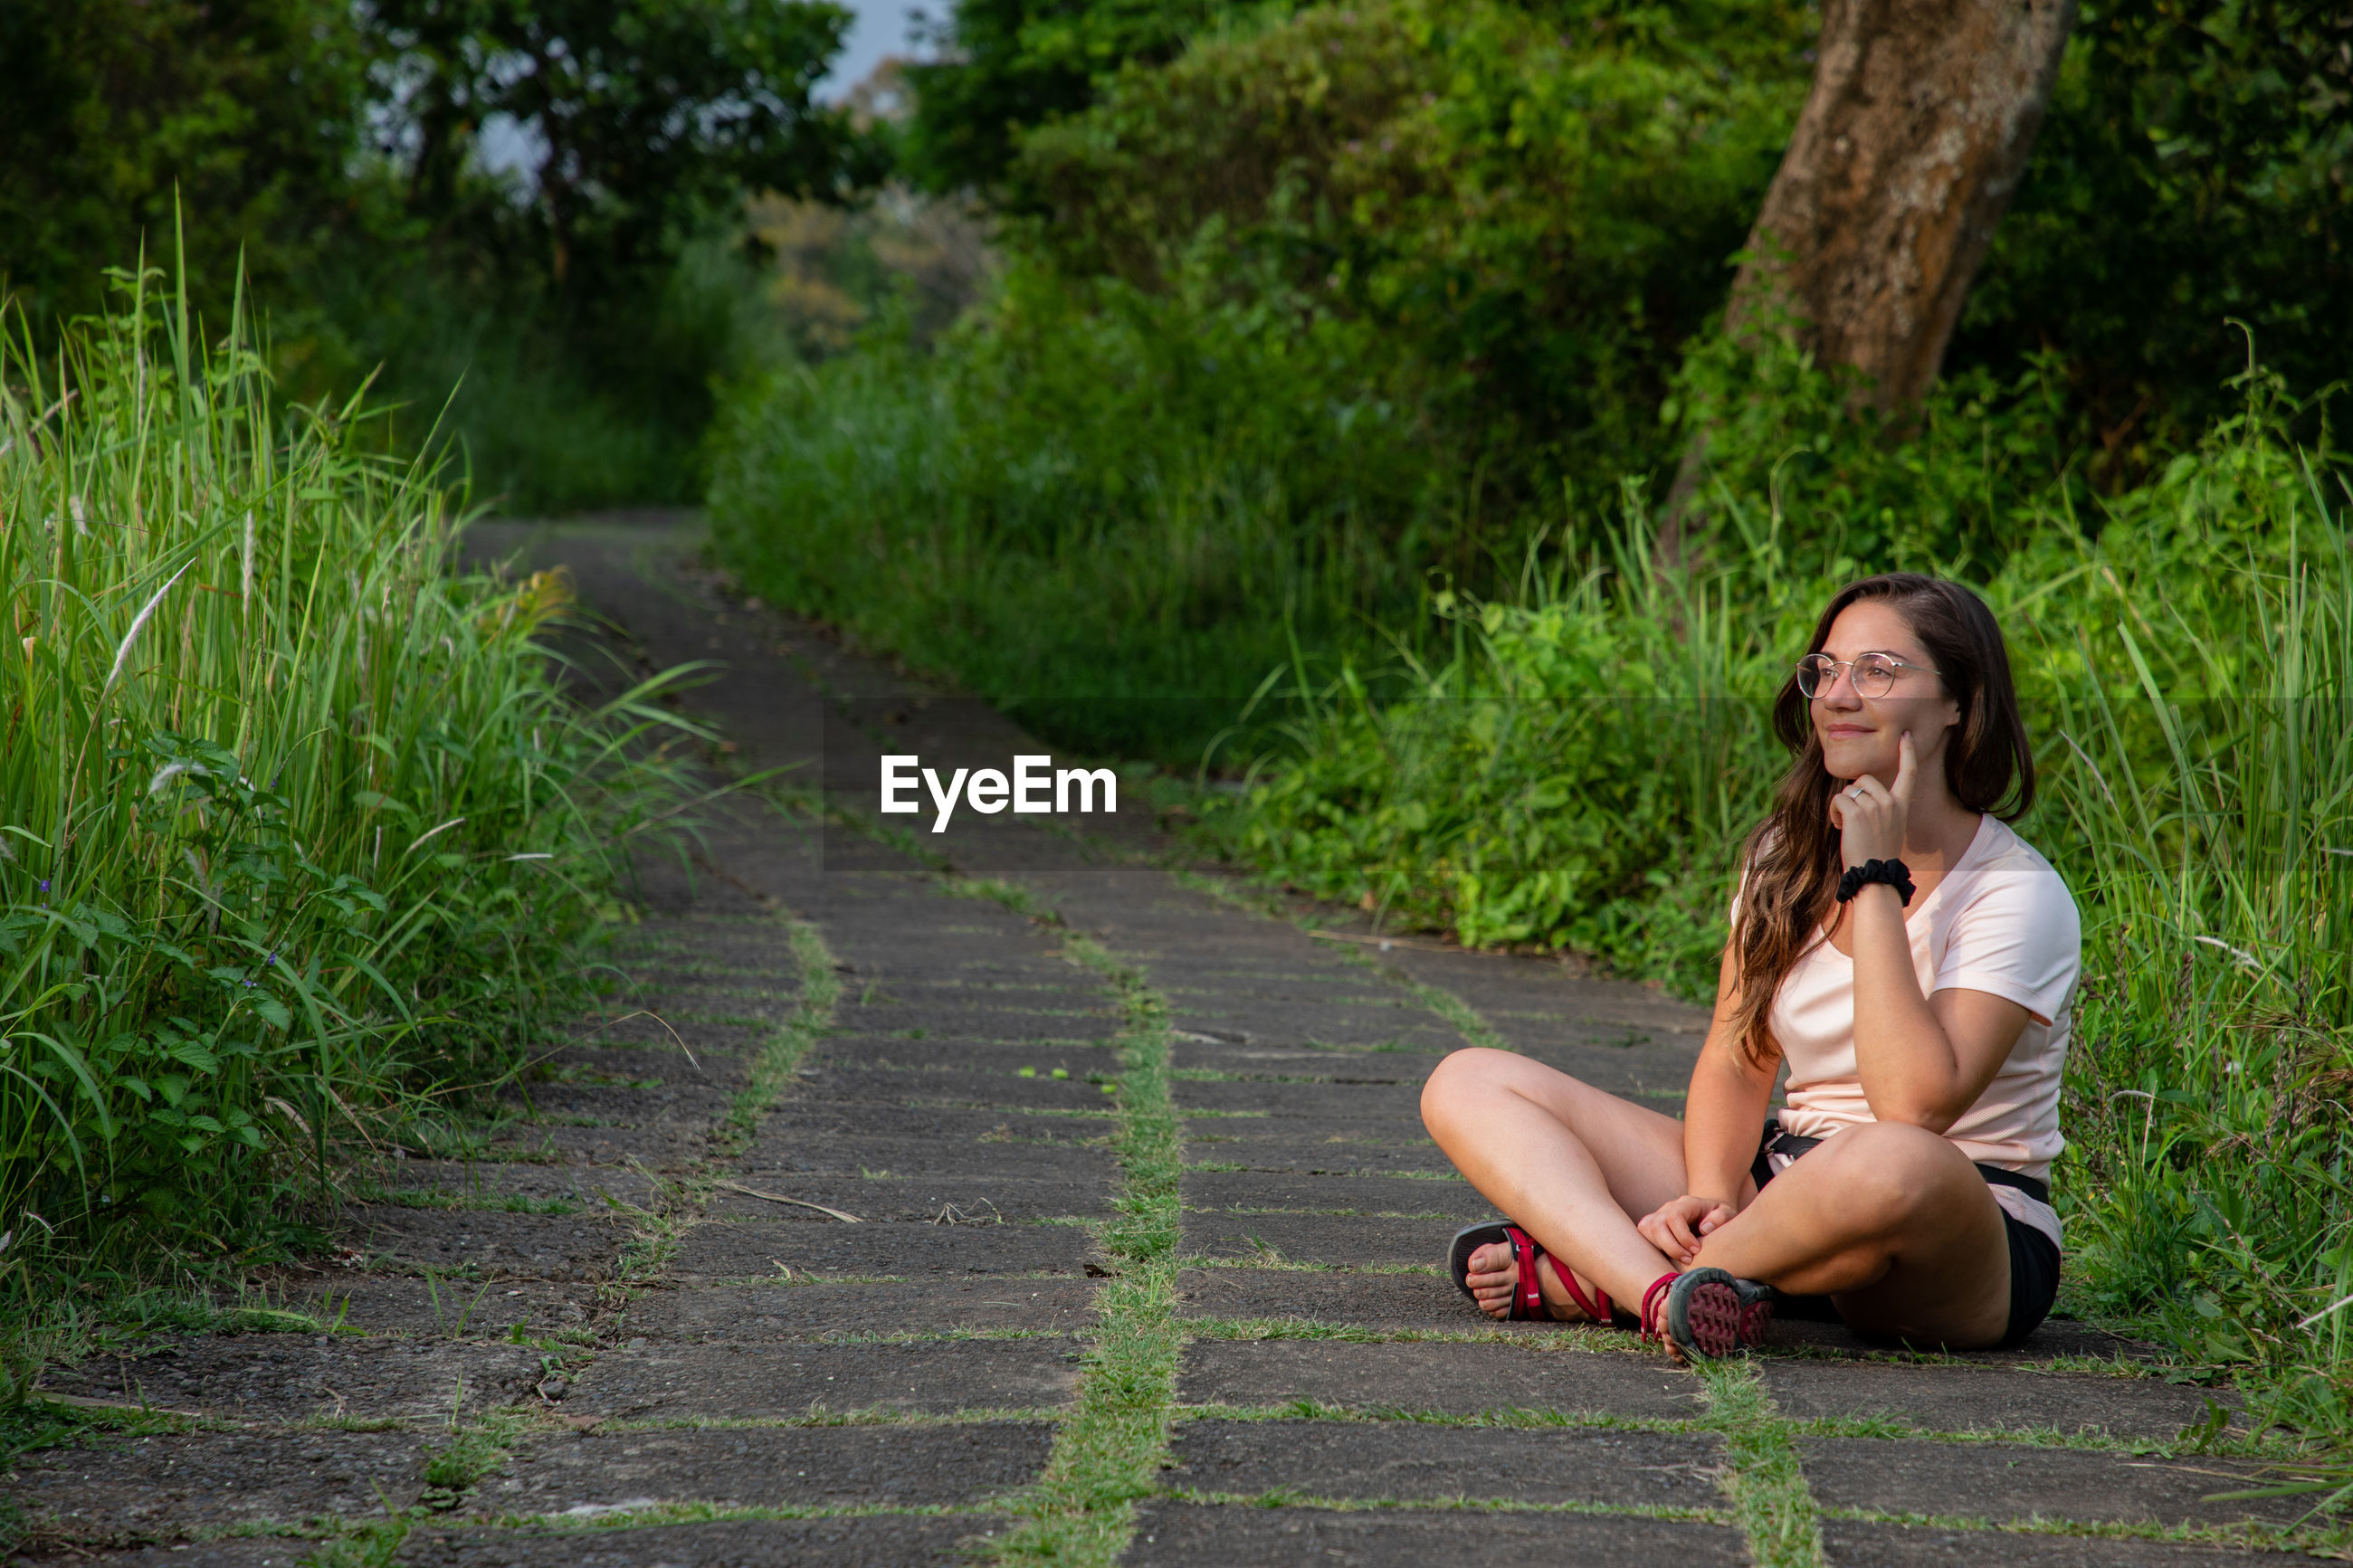 Smiling woman sitting on footpath amidst grass